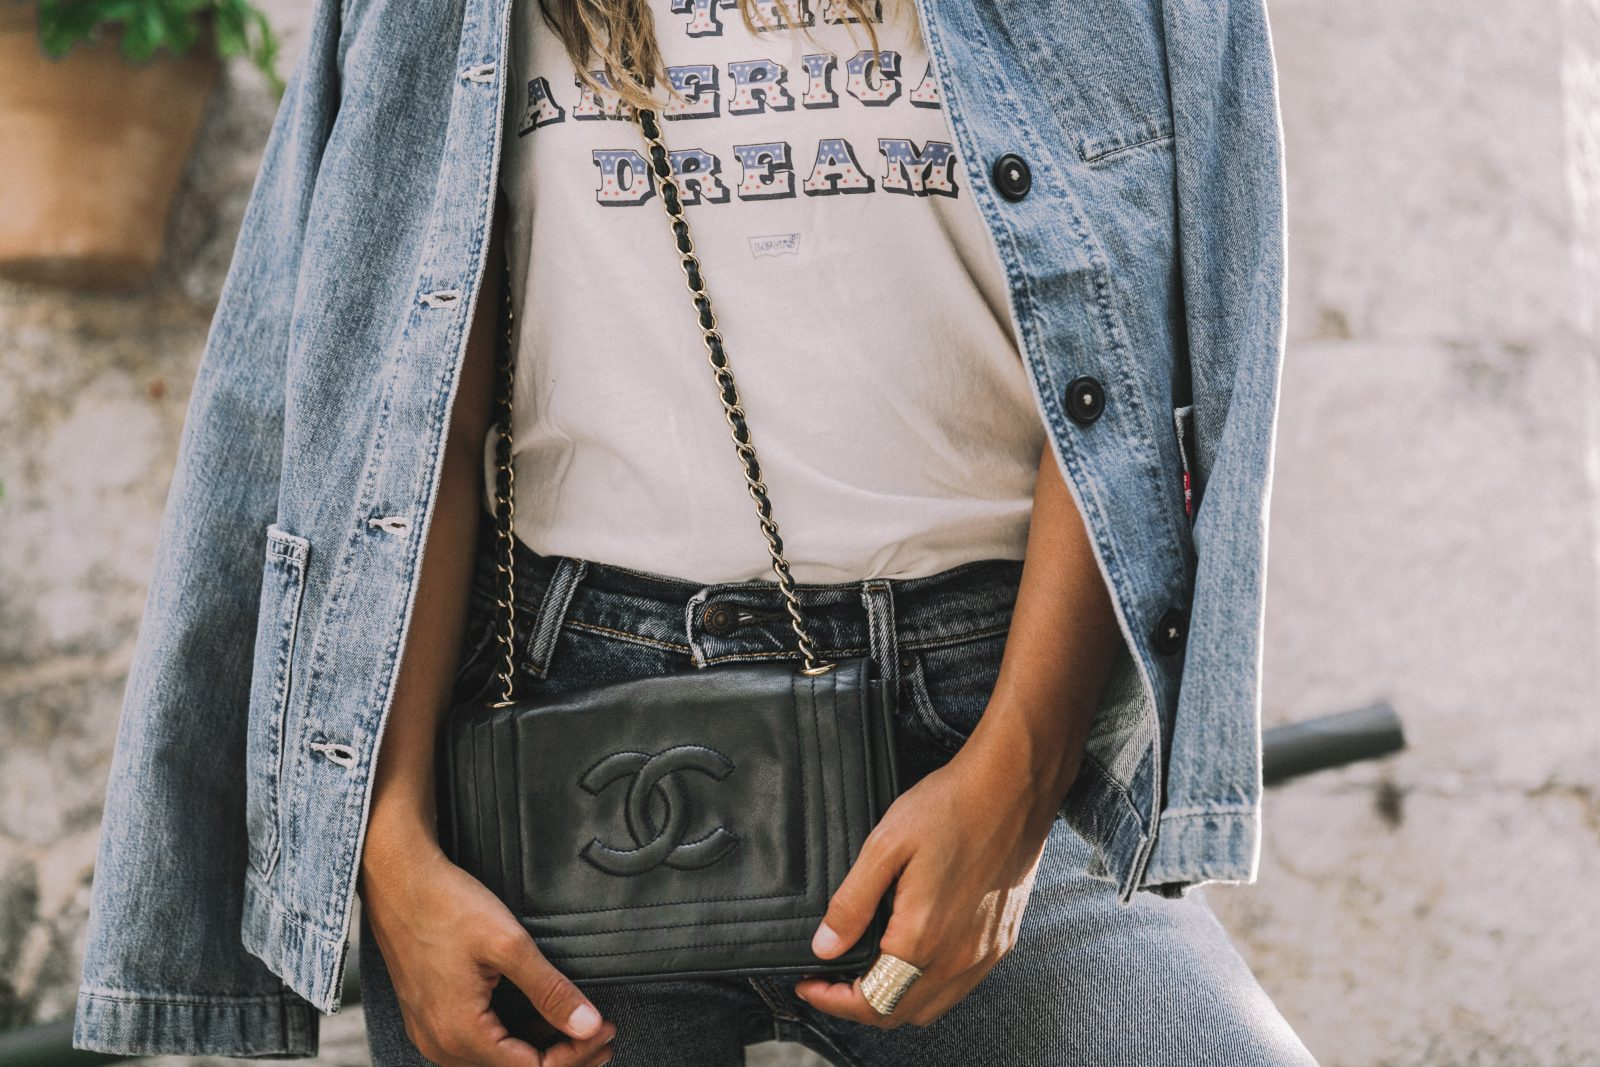 Live_in_Levis-Denim-Who_What_Wear-Levis-Denim-Double_Denim-Menorca-Street_Style-Collage_Vintage-63